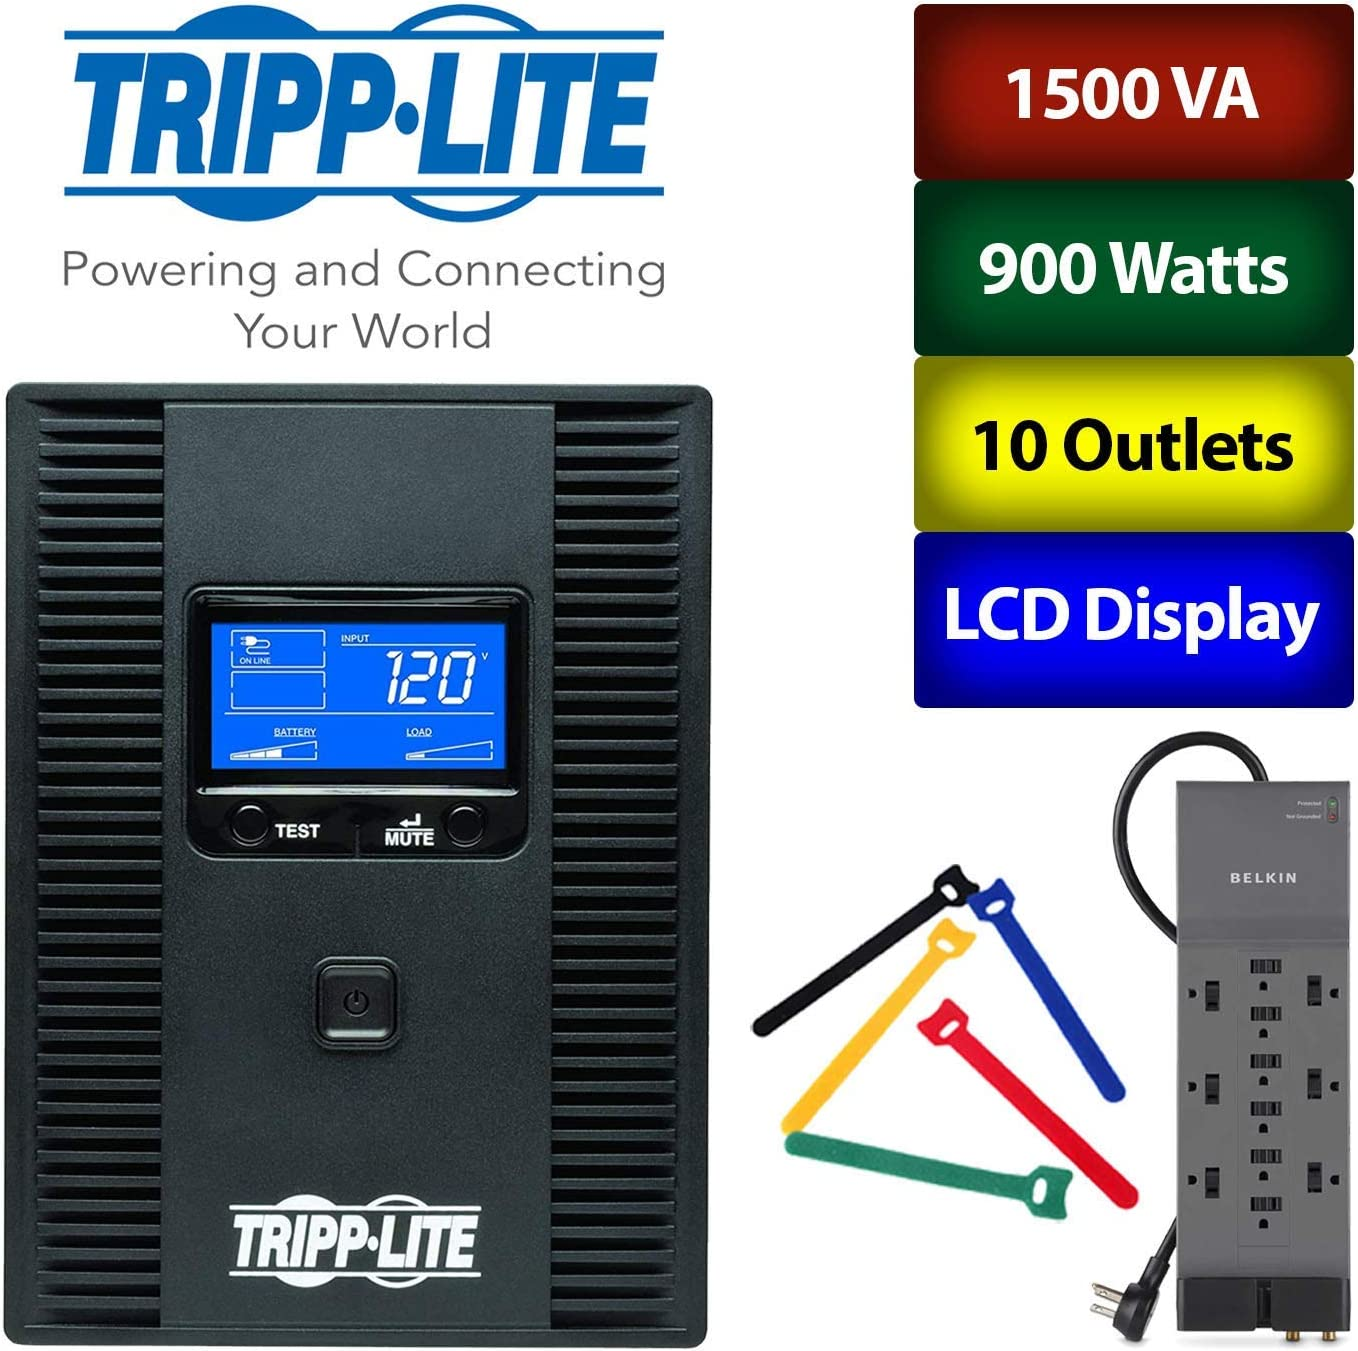 Tripp Lite 1500VA 900W UPS Battery Back Up LCD Display 10 Outlets 120V SMART1500LCDT Home Office Bundle with Wire Ties and Surge Protector 1-Pack AVR